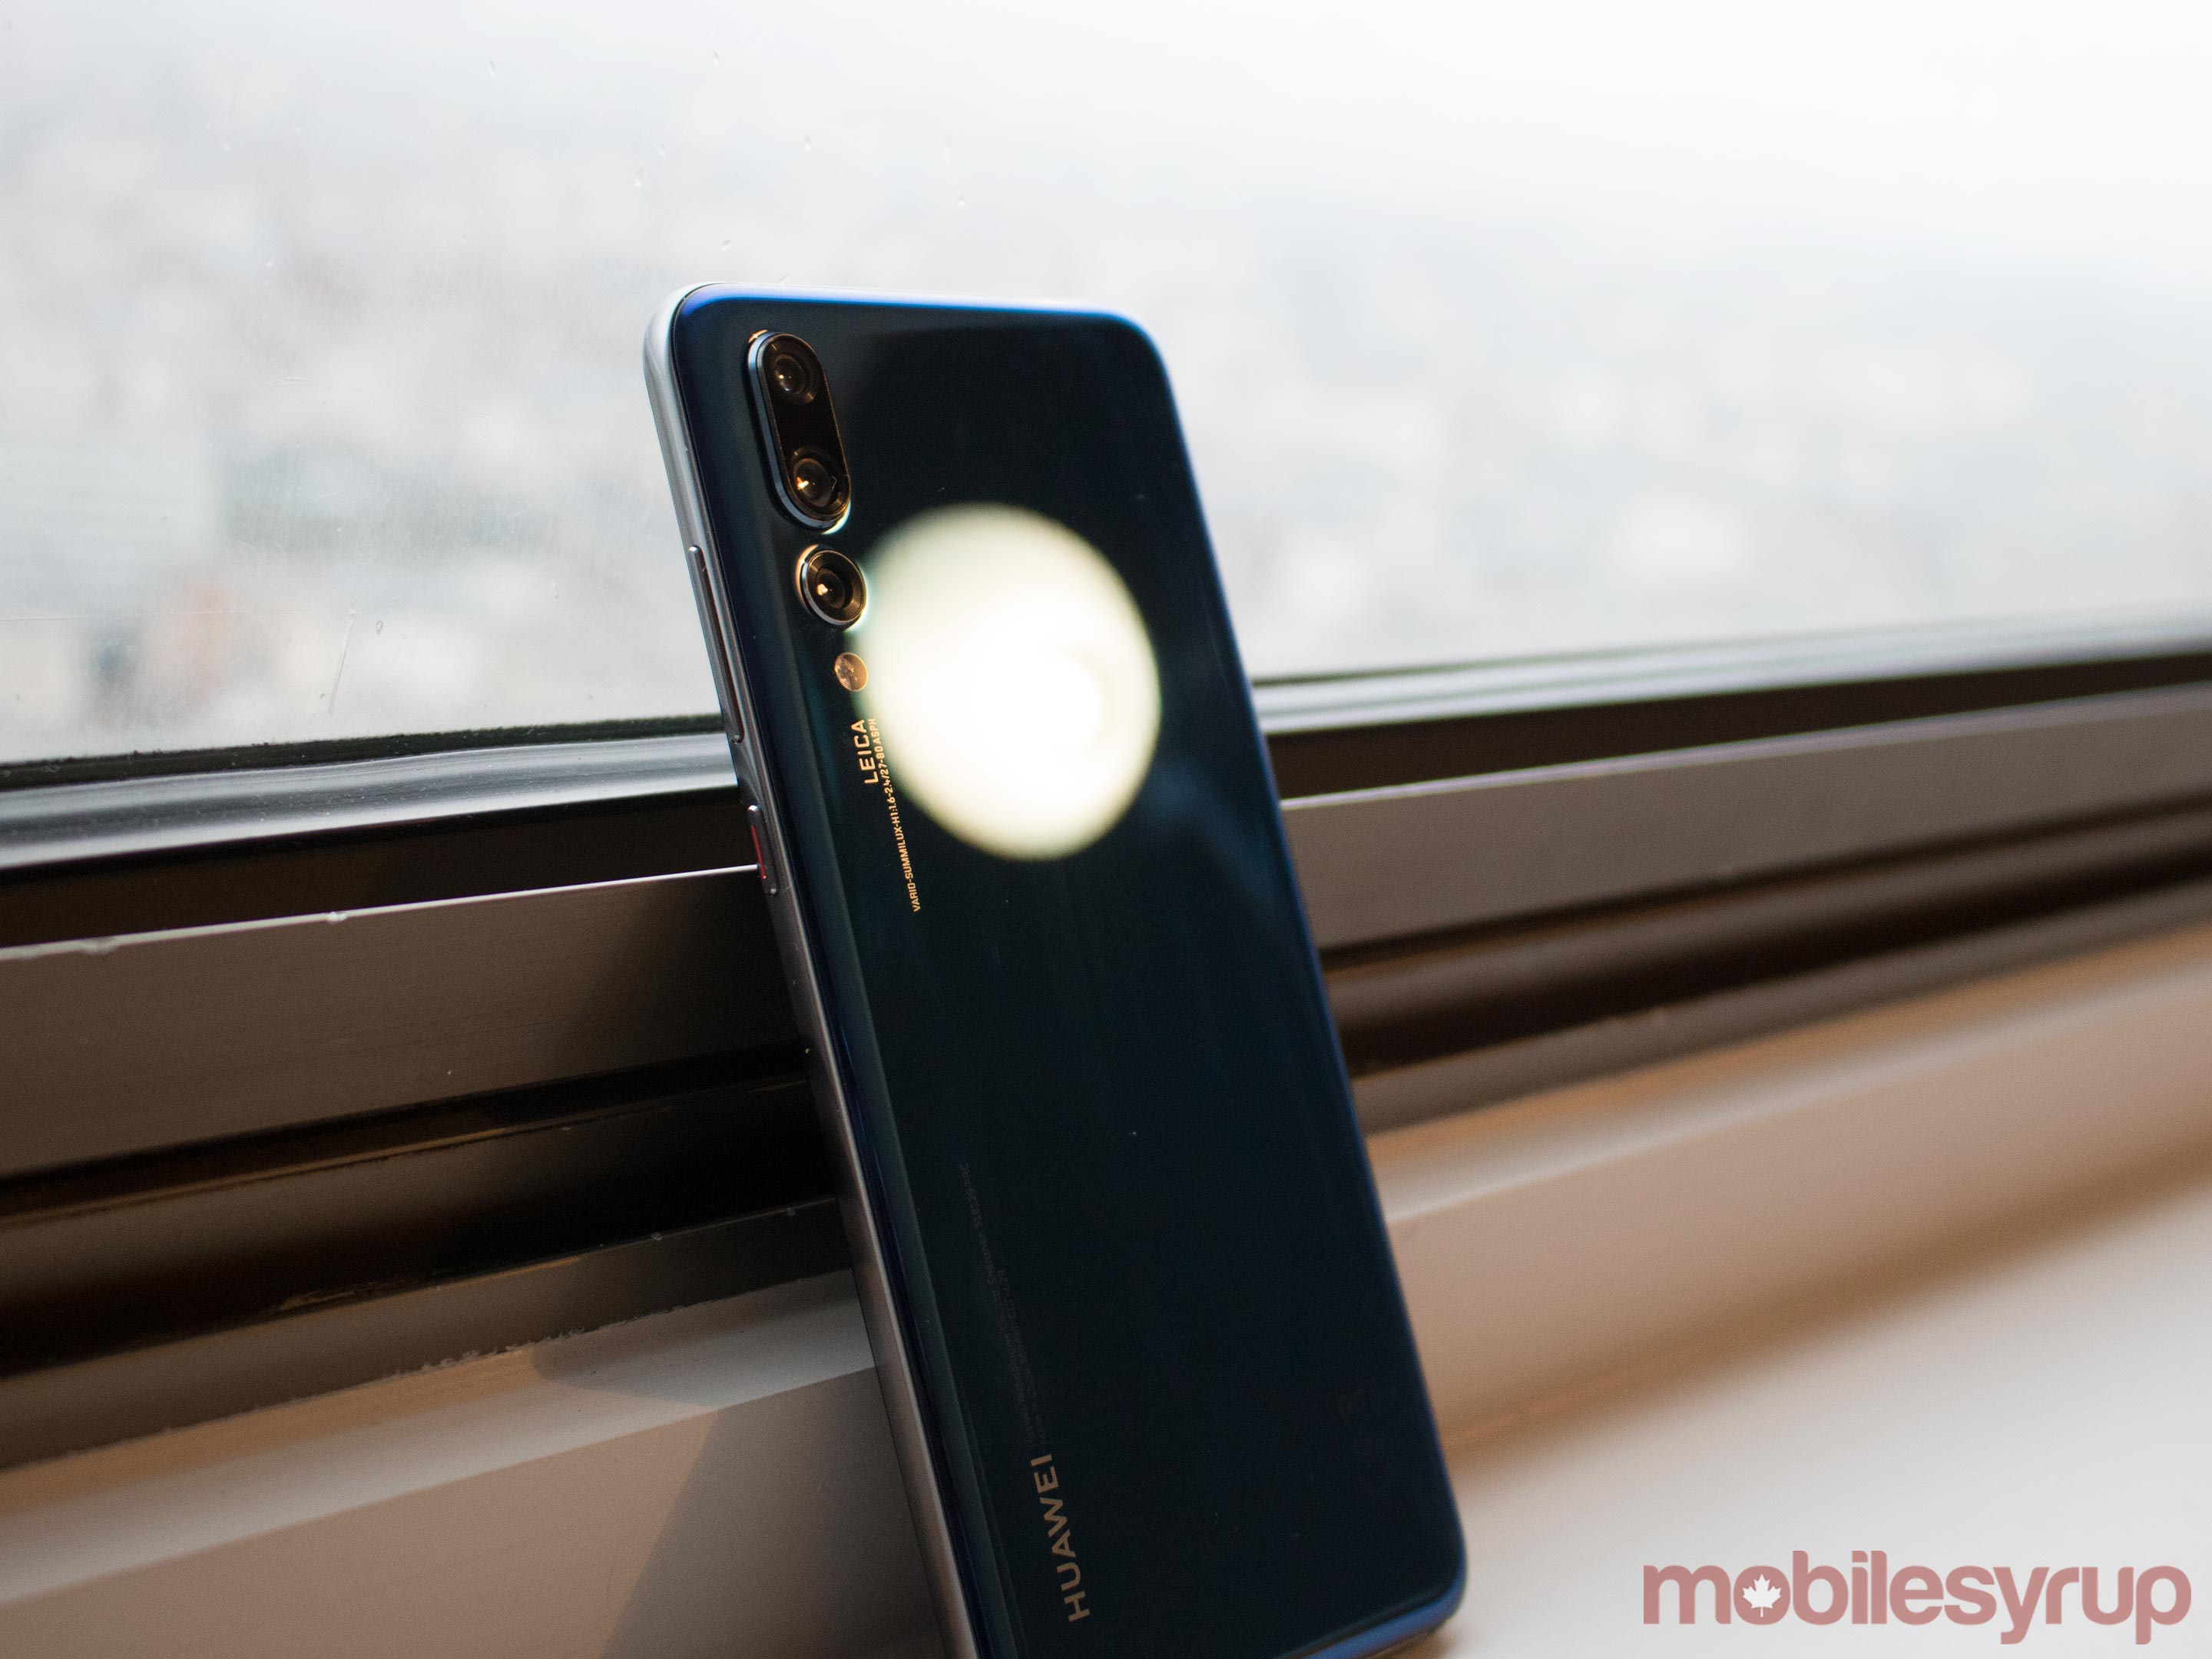 Huawei P20 Pro with light shining on rear